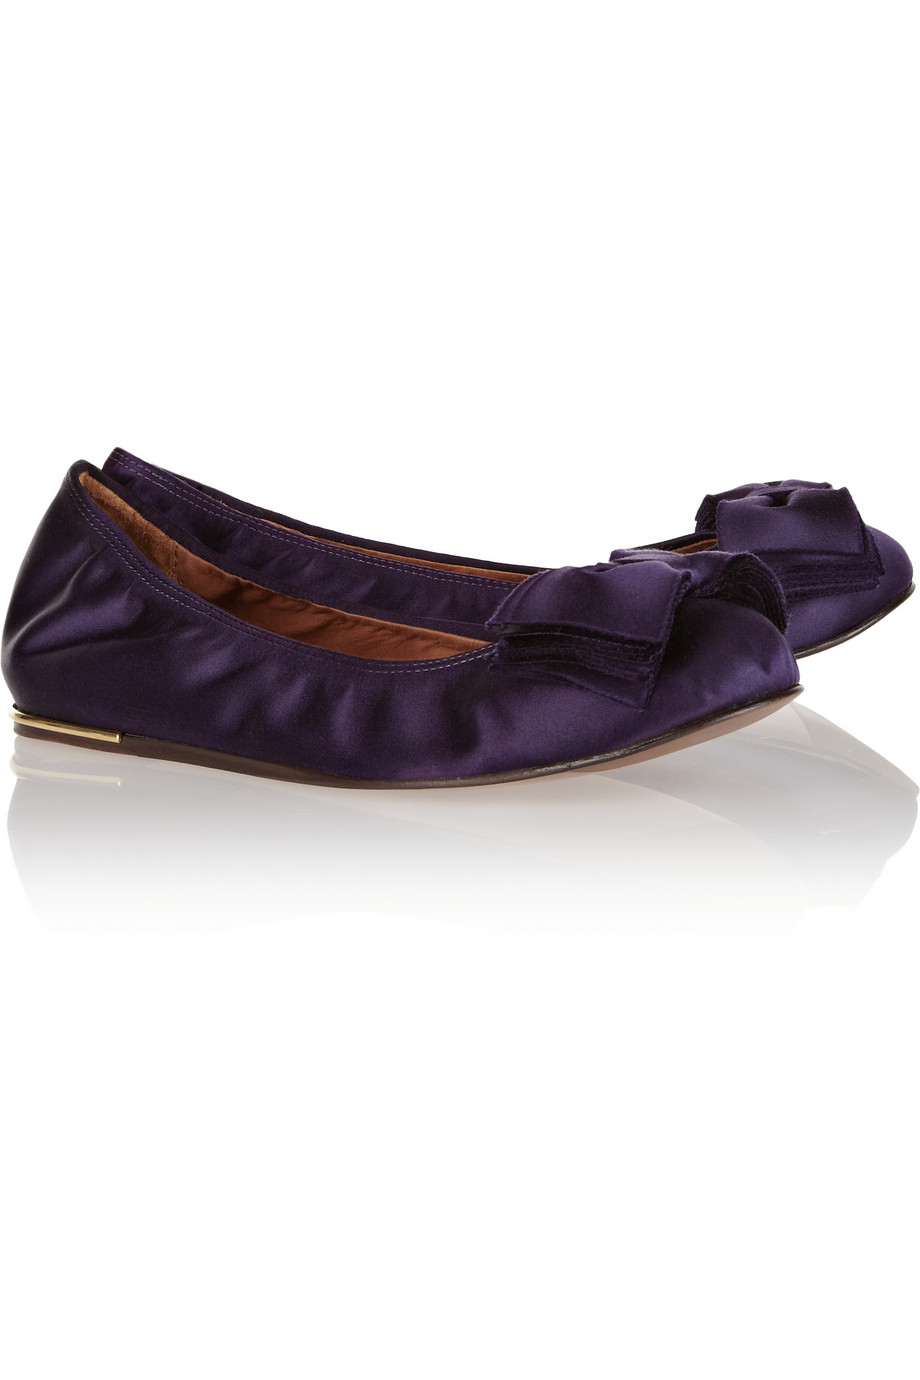 New violet pumps shoes from a guest 4